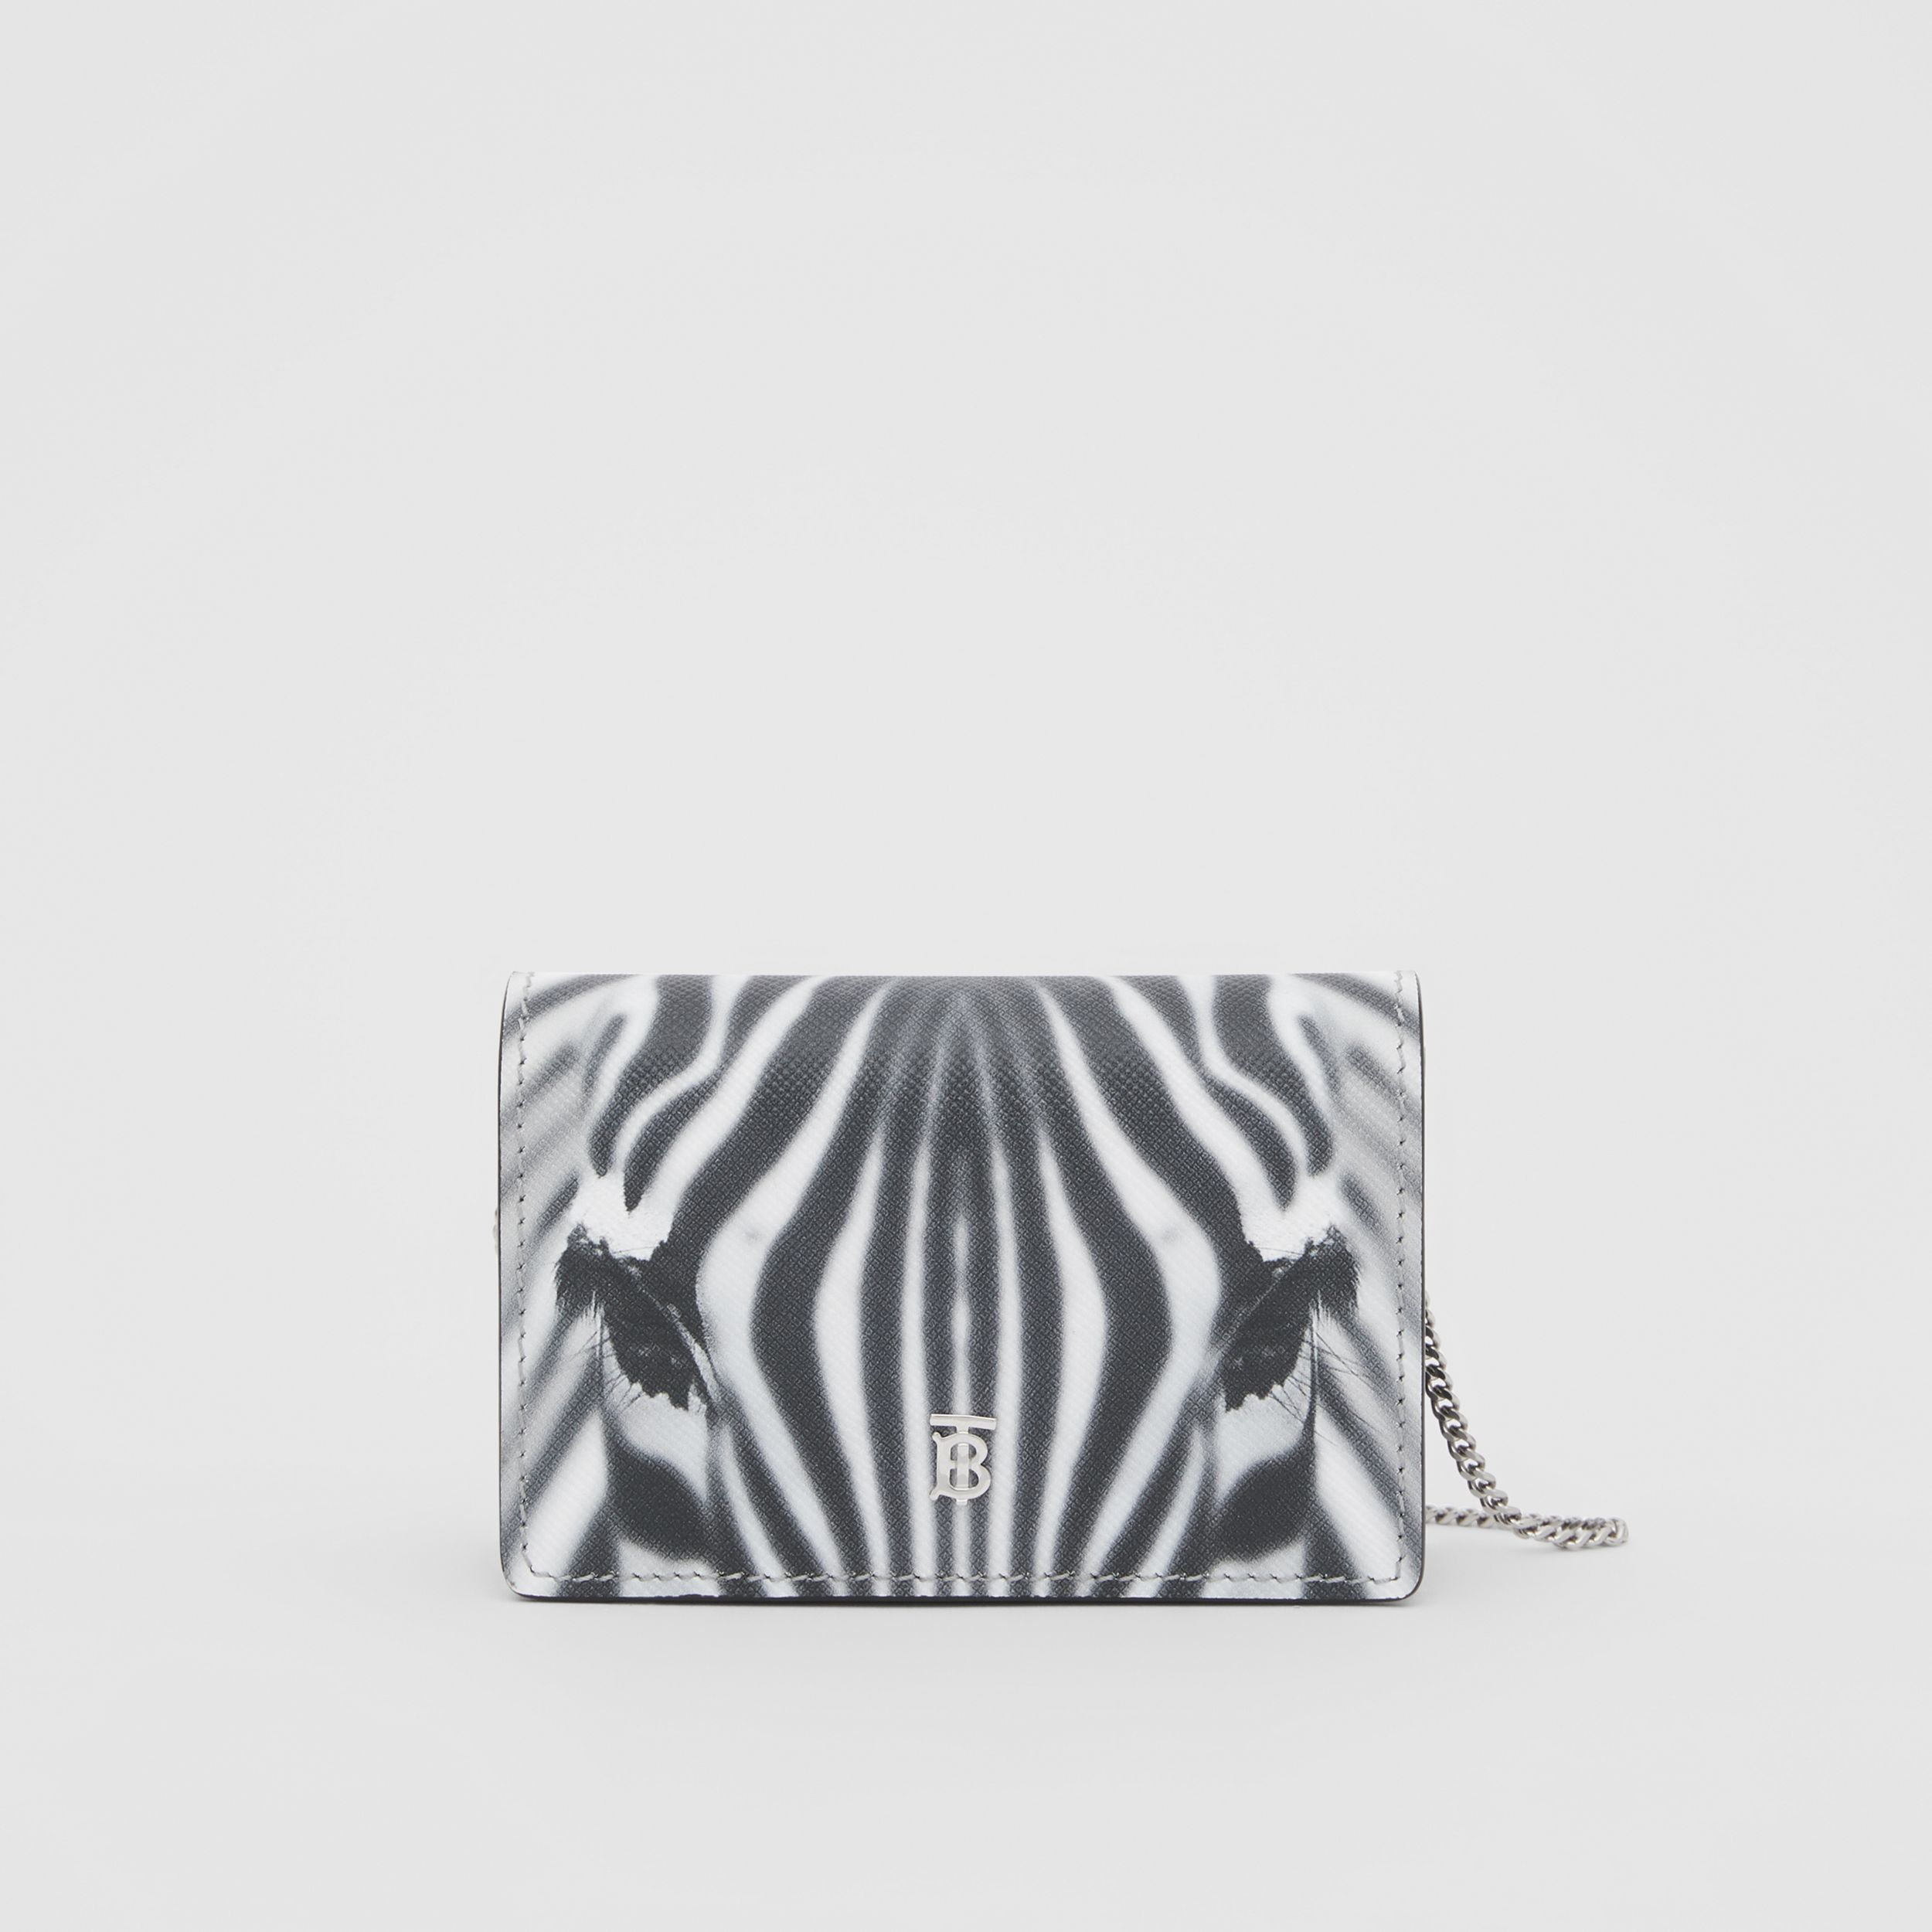 Zebra Print Leather Card Case with Detachable Strap in Black | Burberry - 1